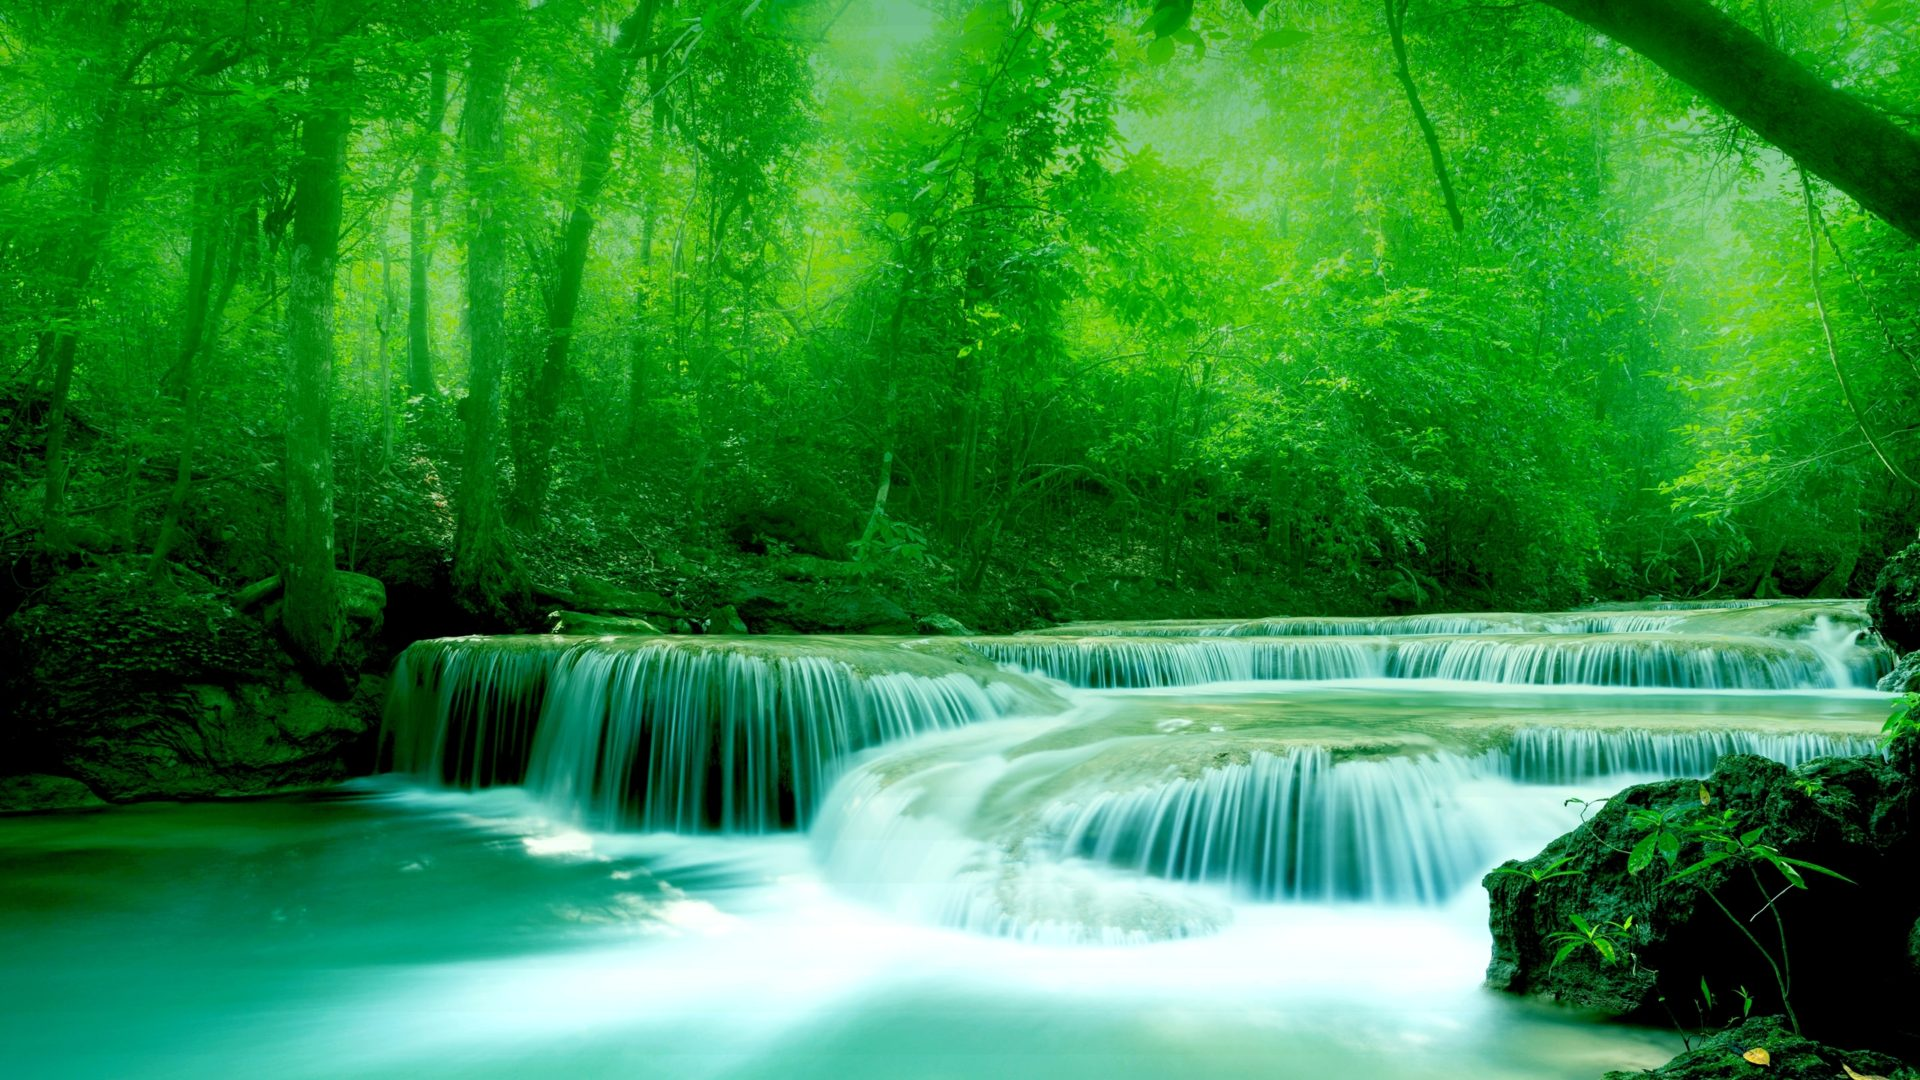 Free 3d Widescreen Wallpapers For Pc Wallpaper River Water Rocks Trees Greenery Free